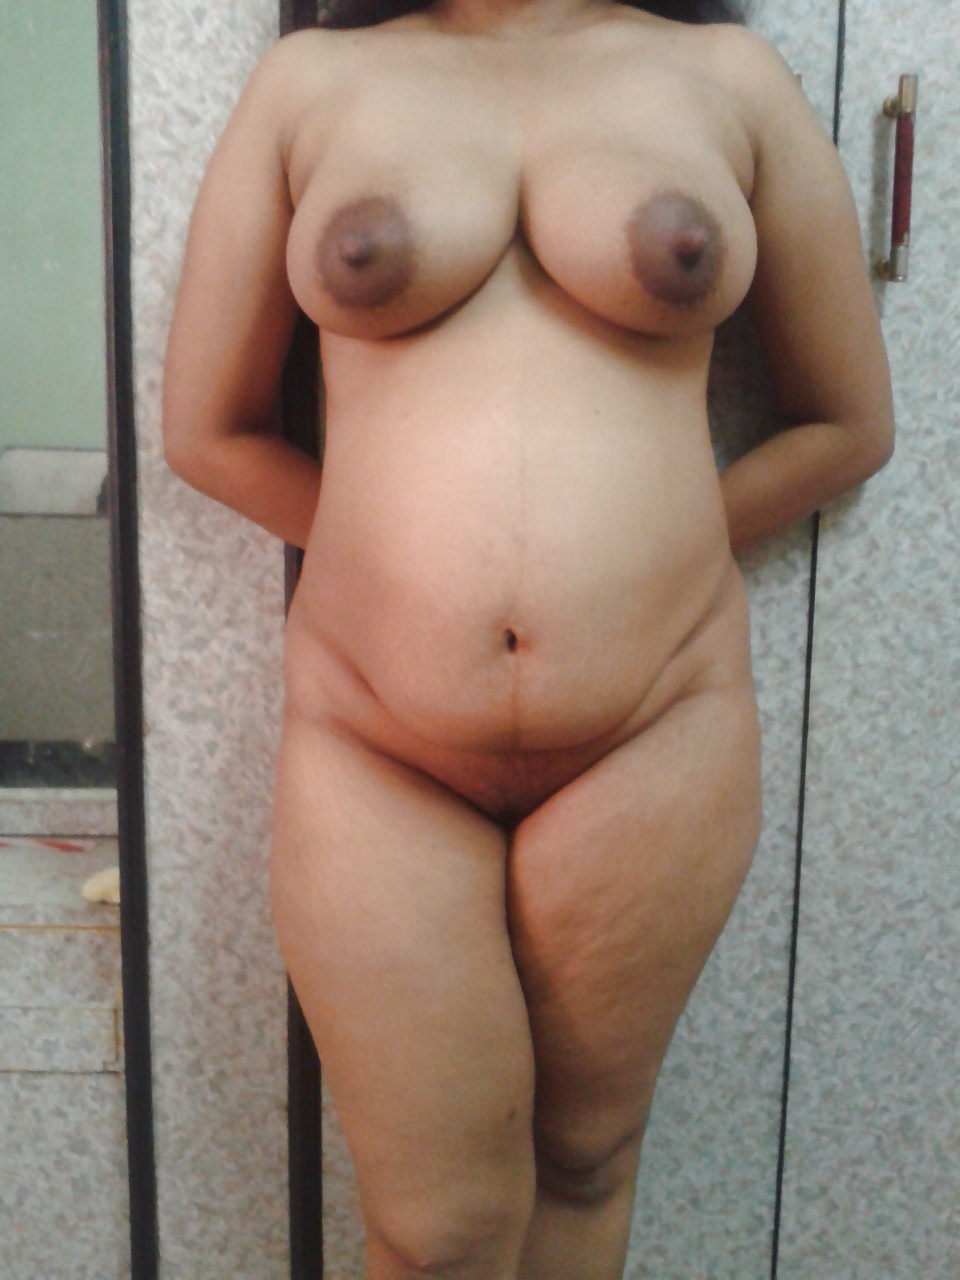 Arabian chubby naked — photo 11